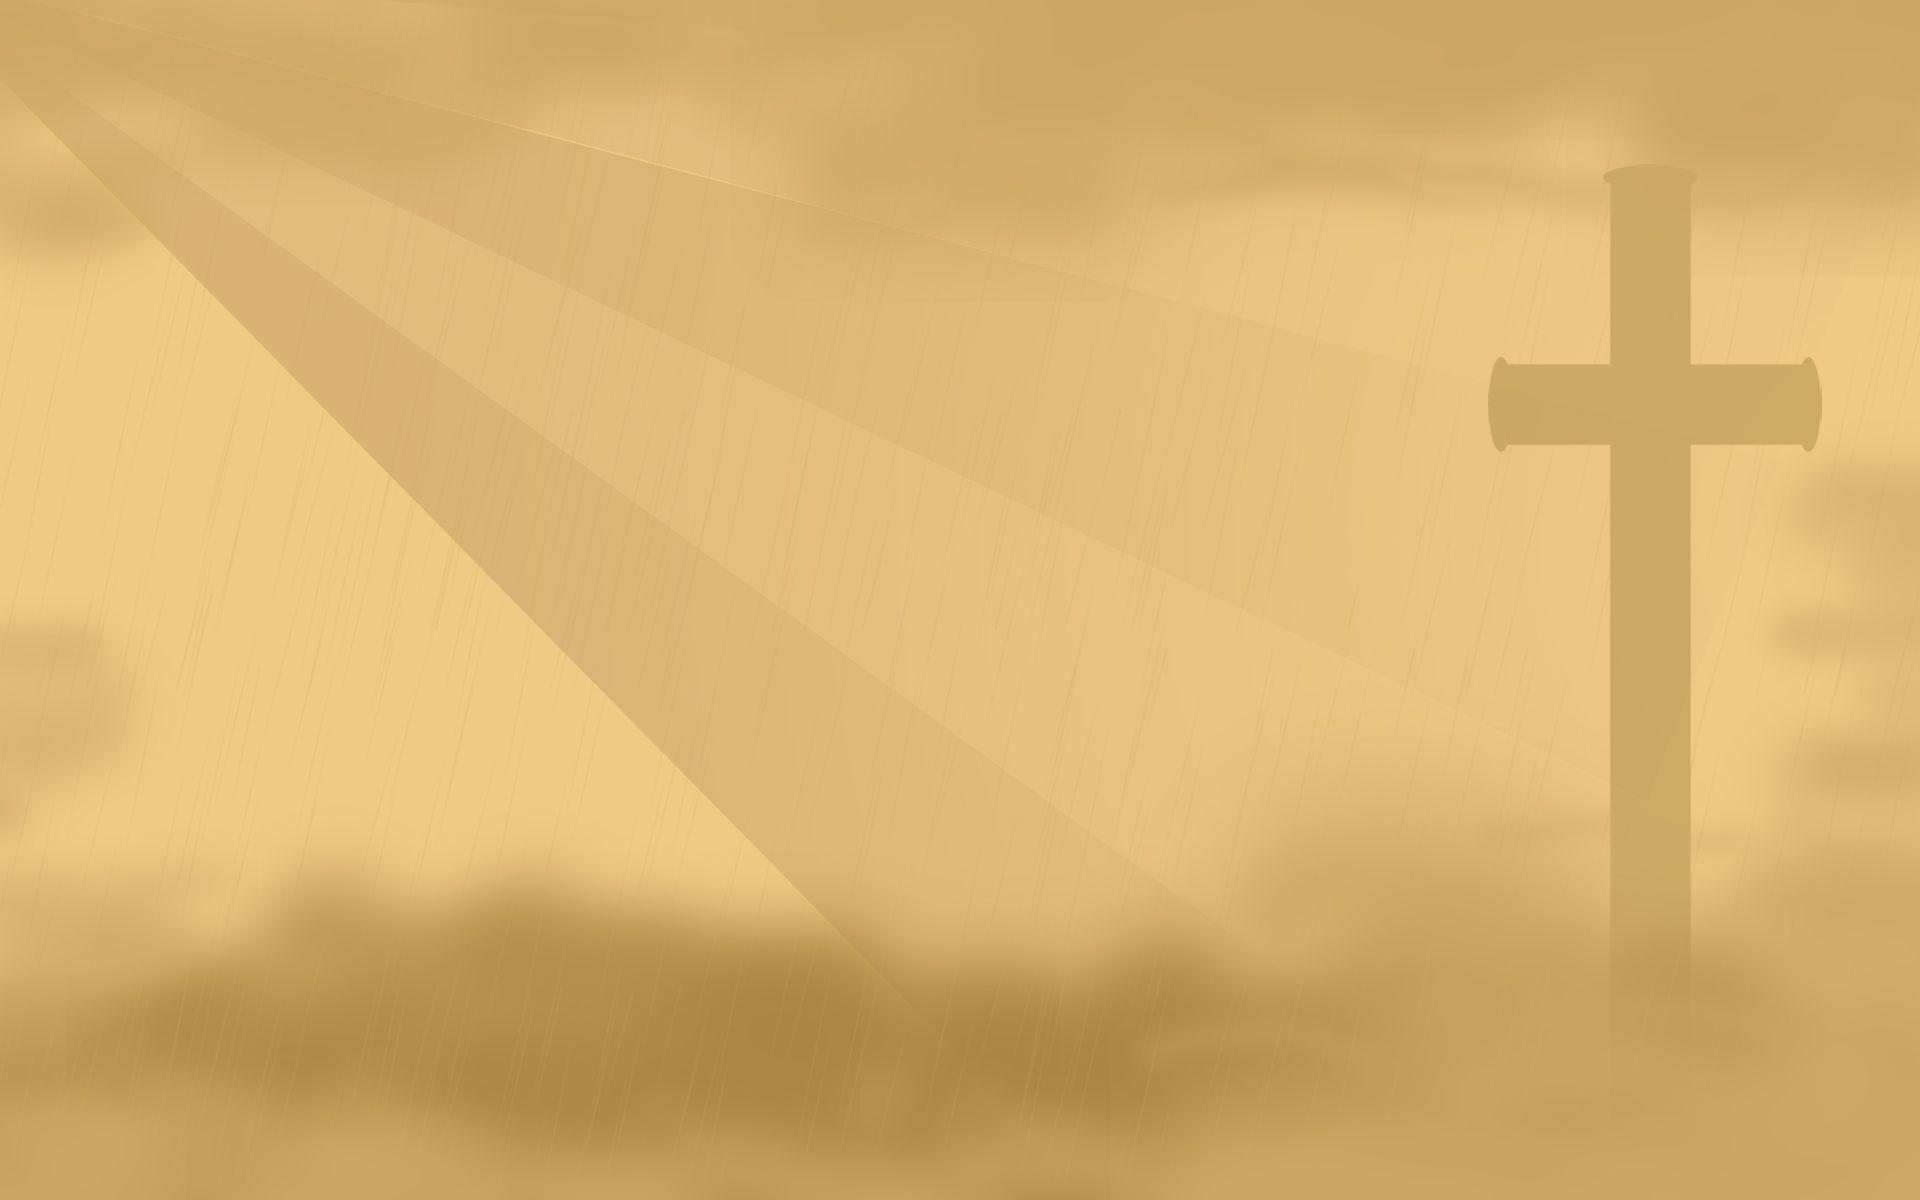 Cross Image With Backgrounds